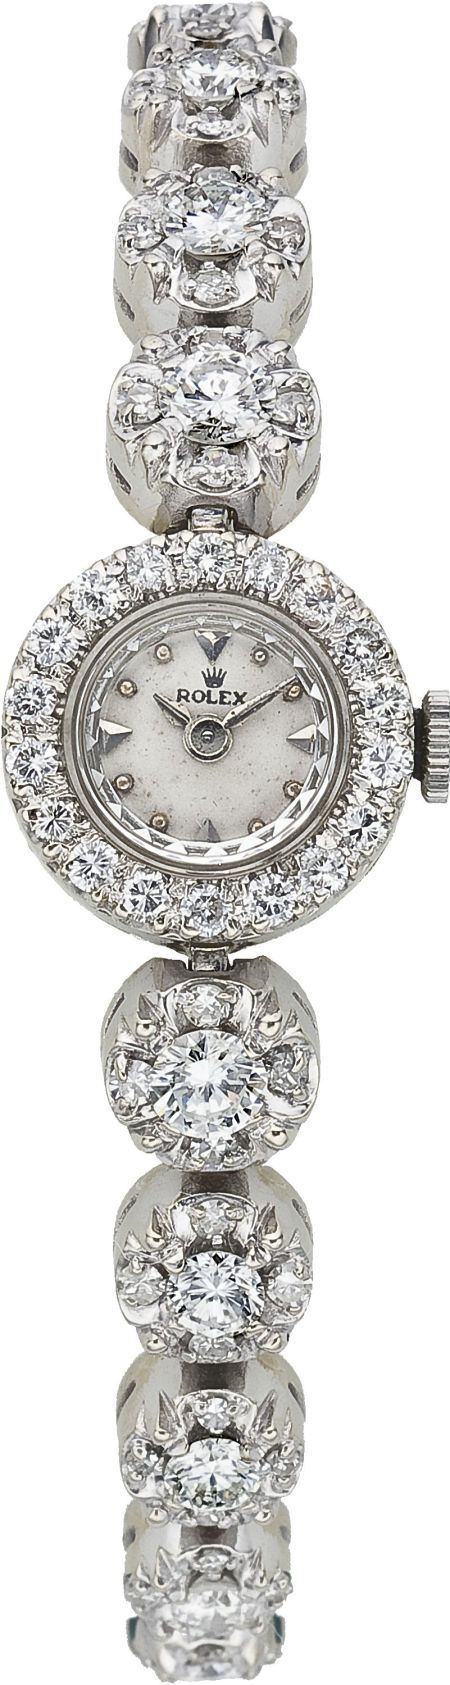 Rolex Lady's Diamond, White Gold Integral Bracelet Wristwatch, circa 1950. by Sharmay